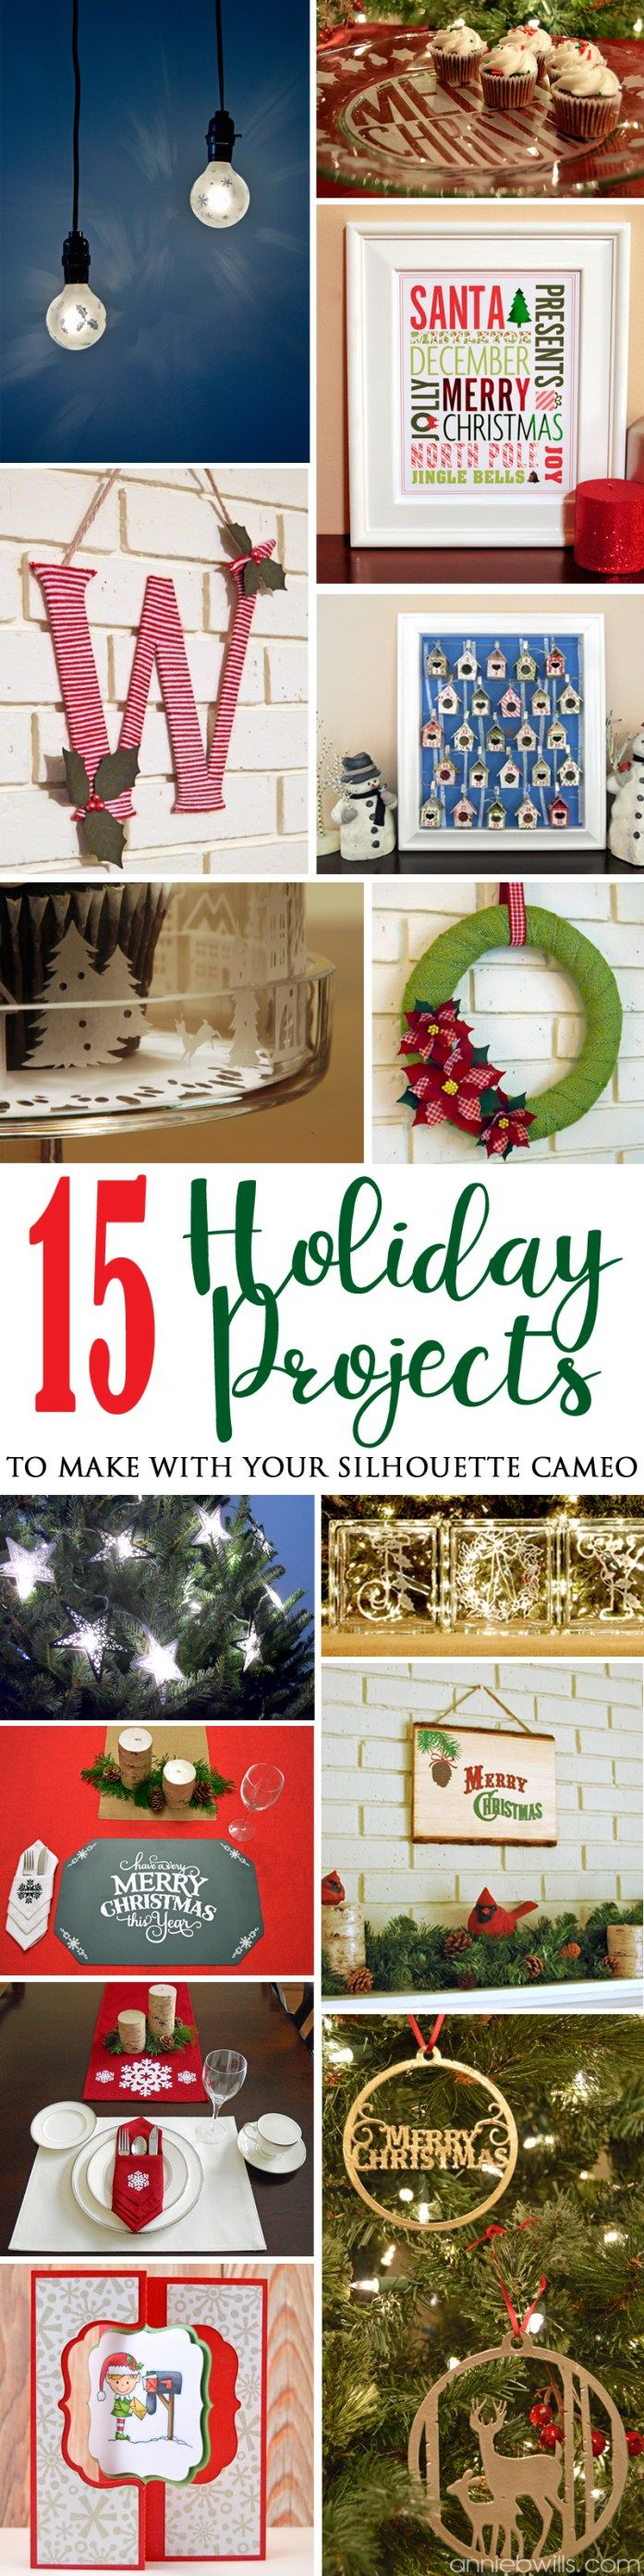 15 Holiday Projects to Make with Your Silhouette CAMEO